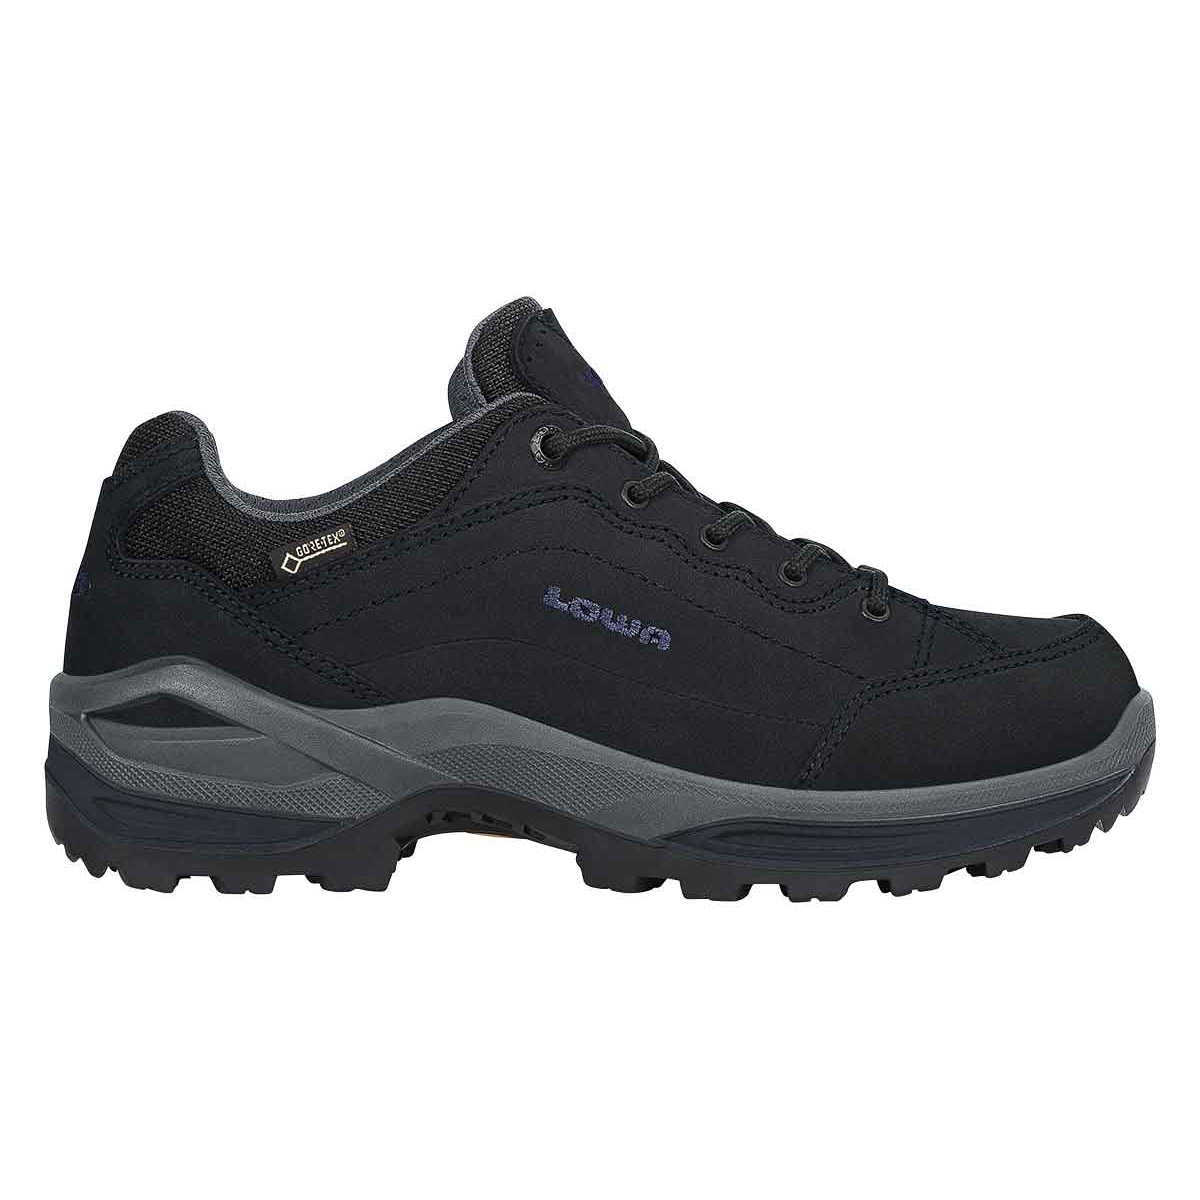 Renegade Gtx Low - Black Black Berry